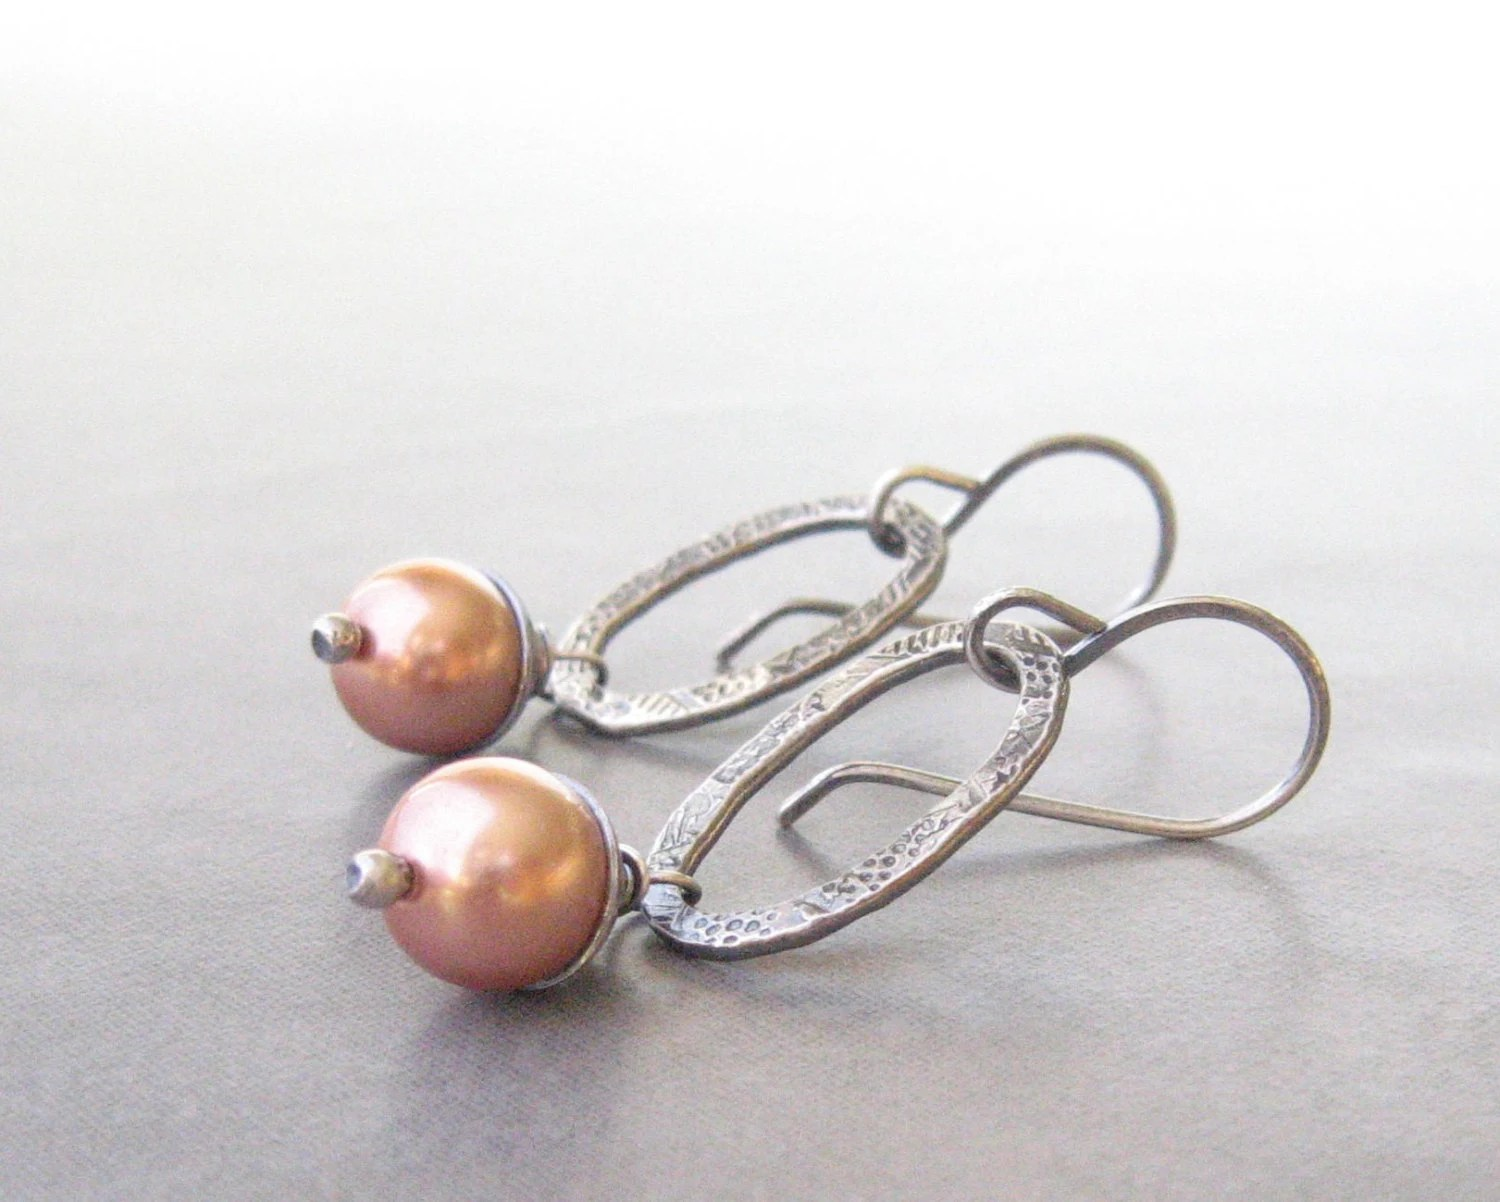 peach pearl and sterling silver dangle earrings, oxidized metalwork dangle earrings - theBeadAerie